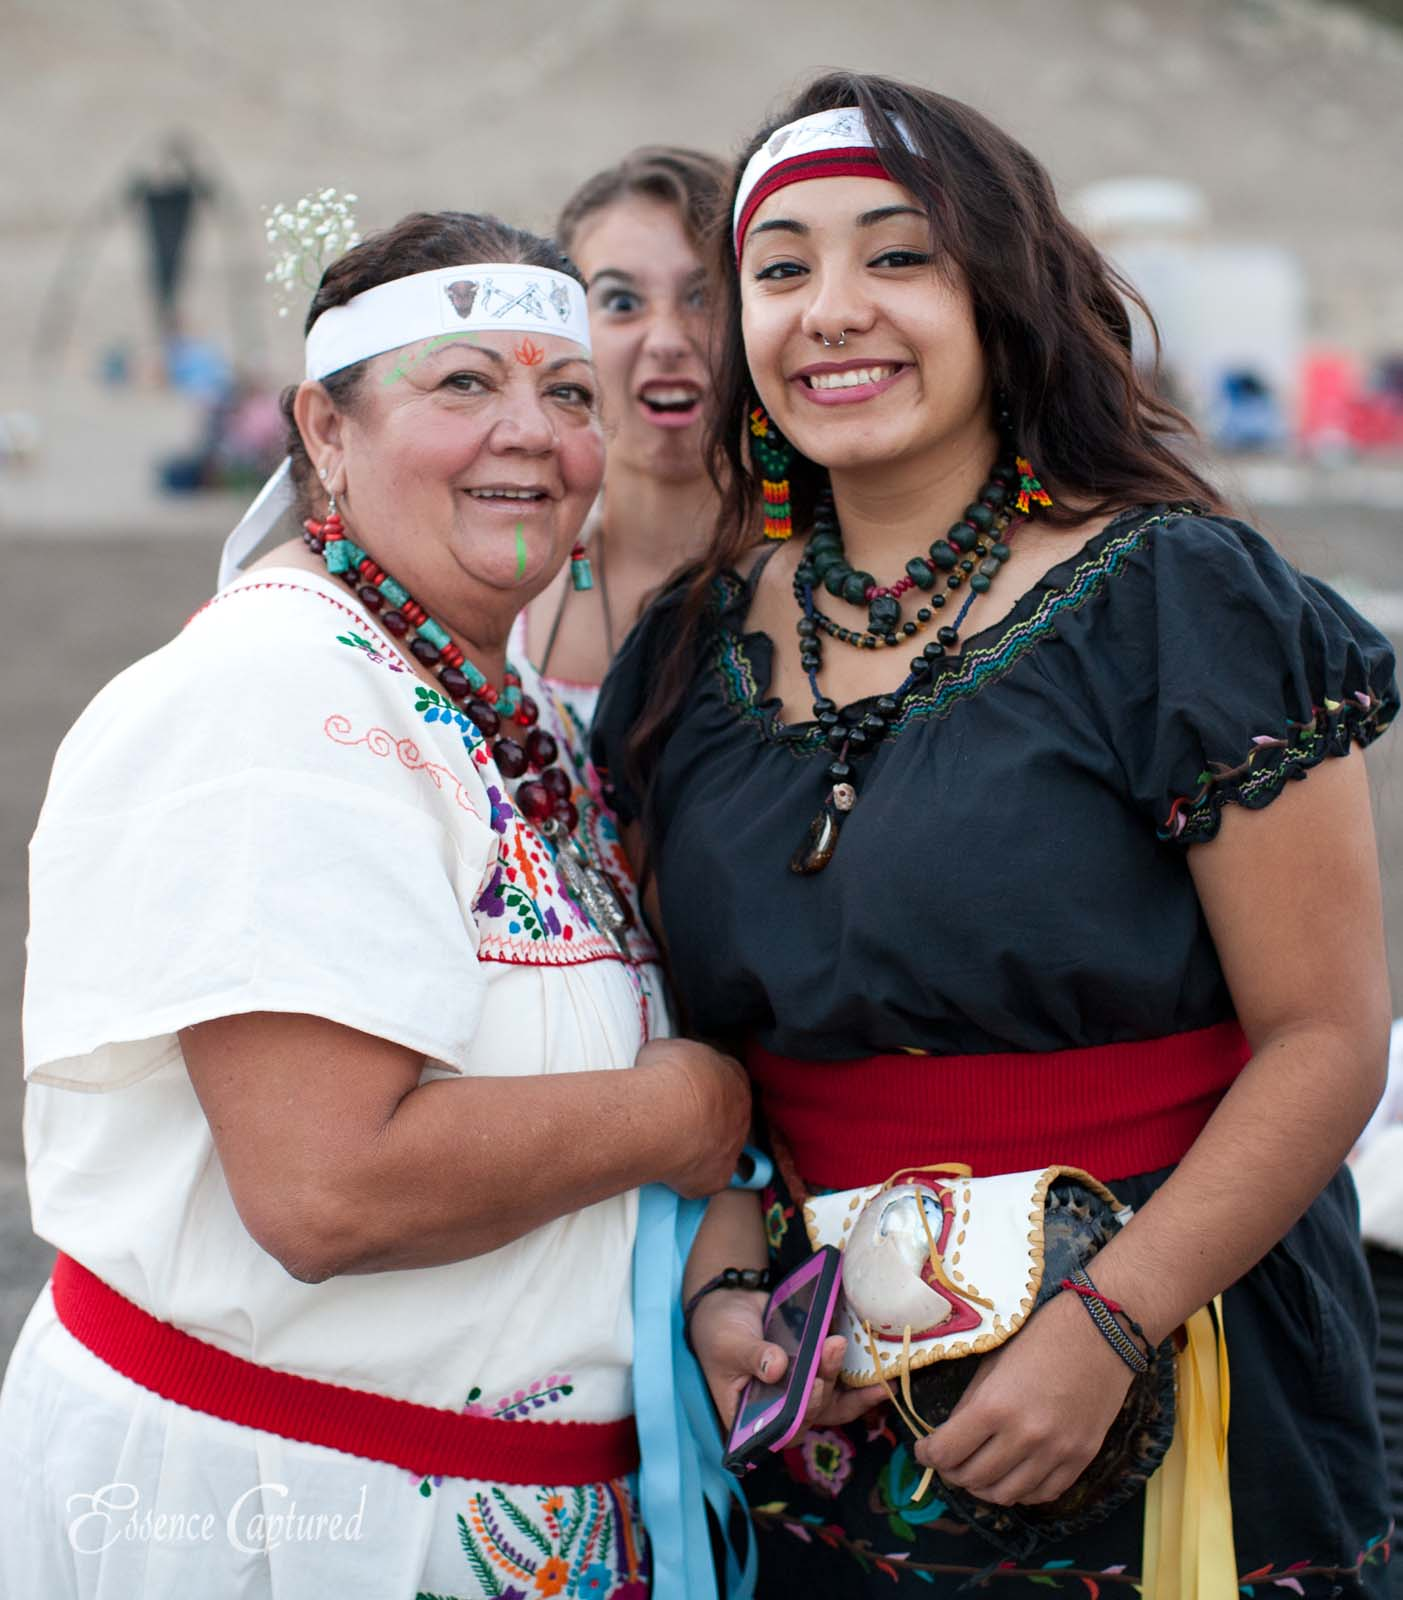 Long Dance 2014 ceremonial dress photo bomb by young girl